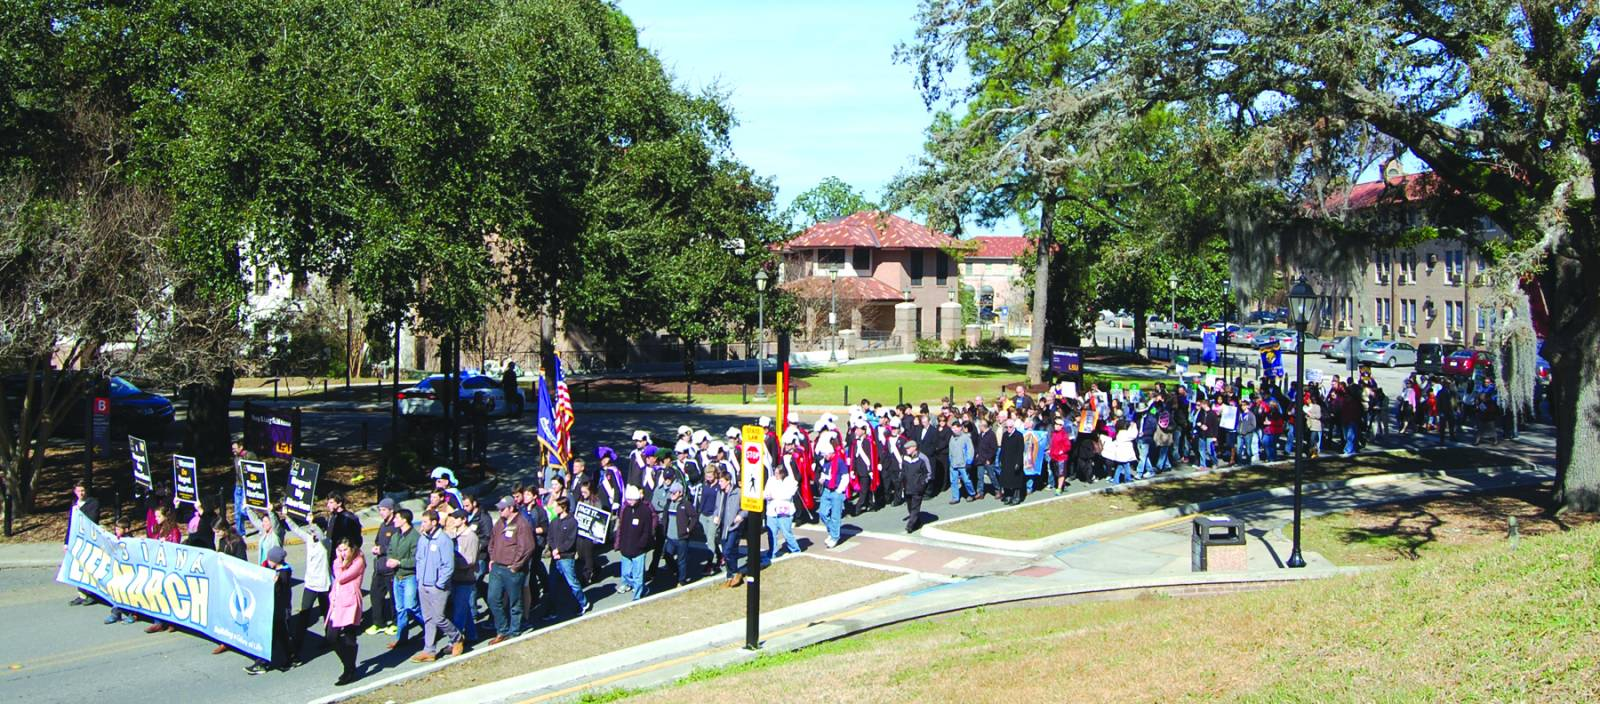 Several thousand pro-life supporters marched across the LSU campus for the 2015 Louisiana Life March. Gov. Bobby Jindal encouraged more than 3,500 people, who gathered at the LSU Greek Amphitheater, to keep fighting for the rights of the unborn.